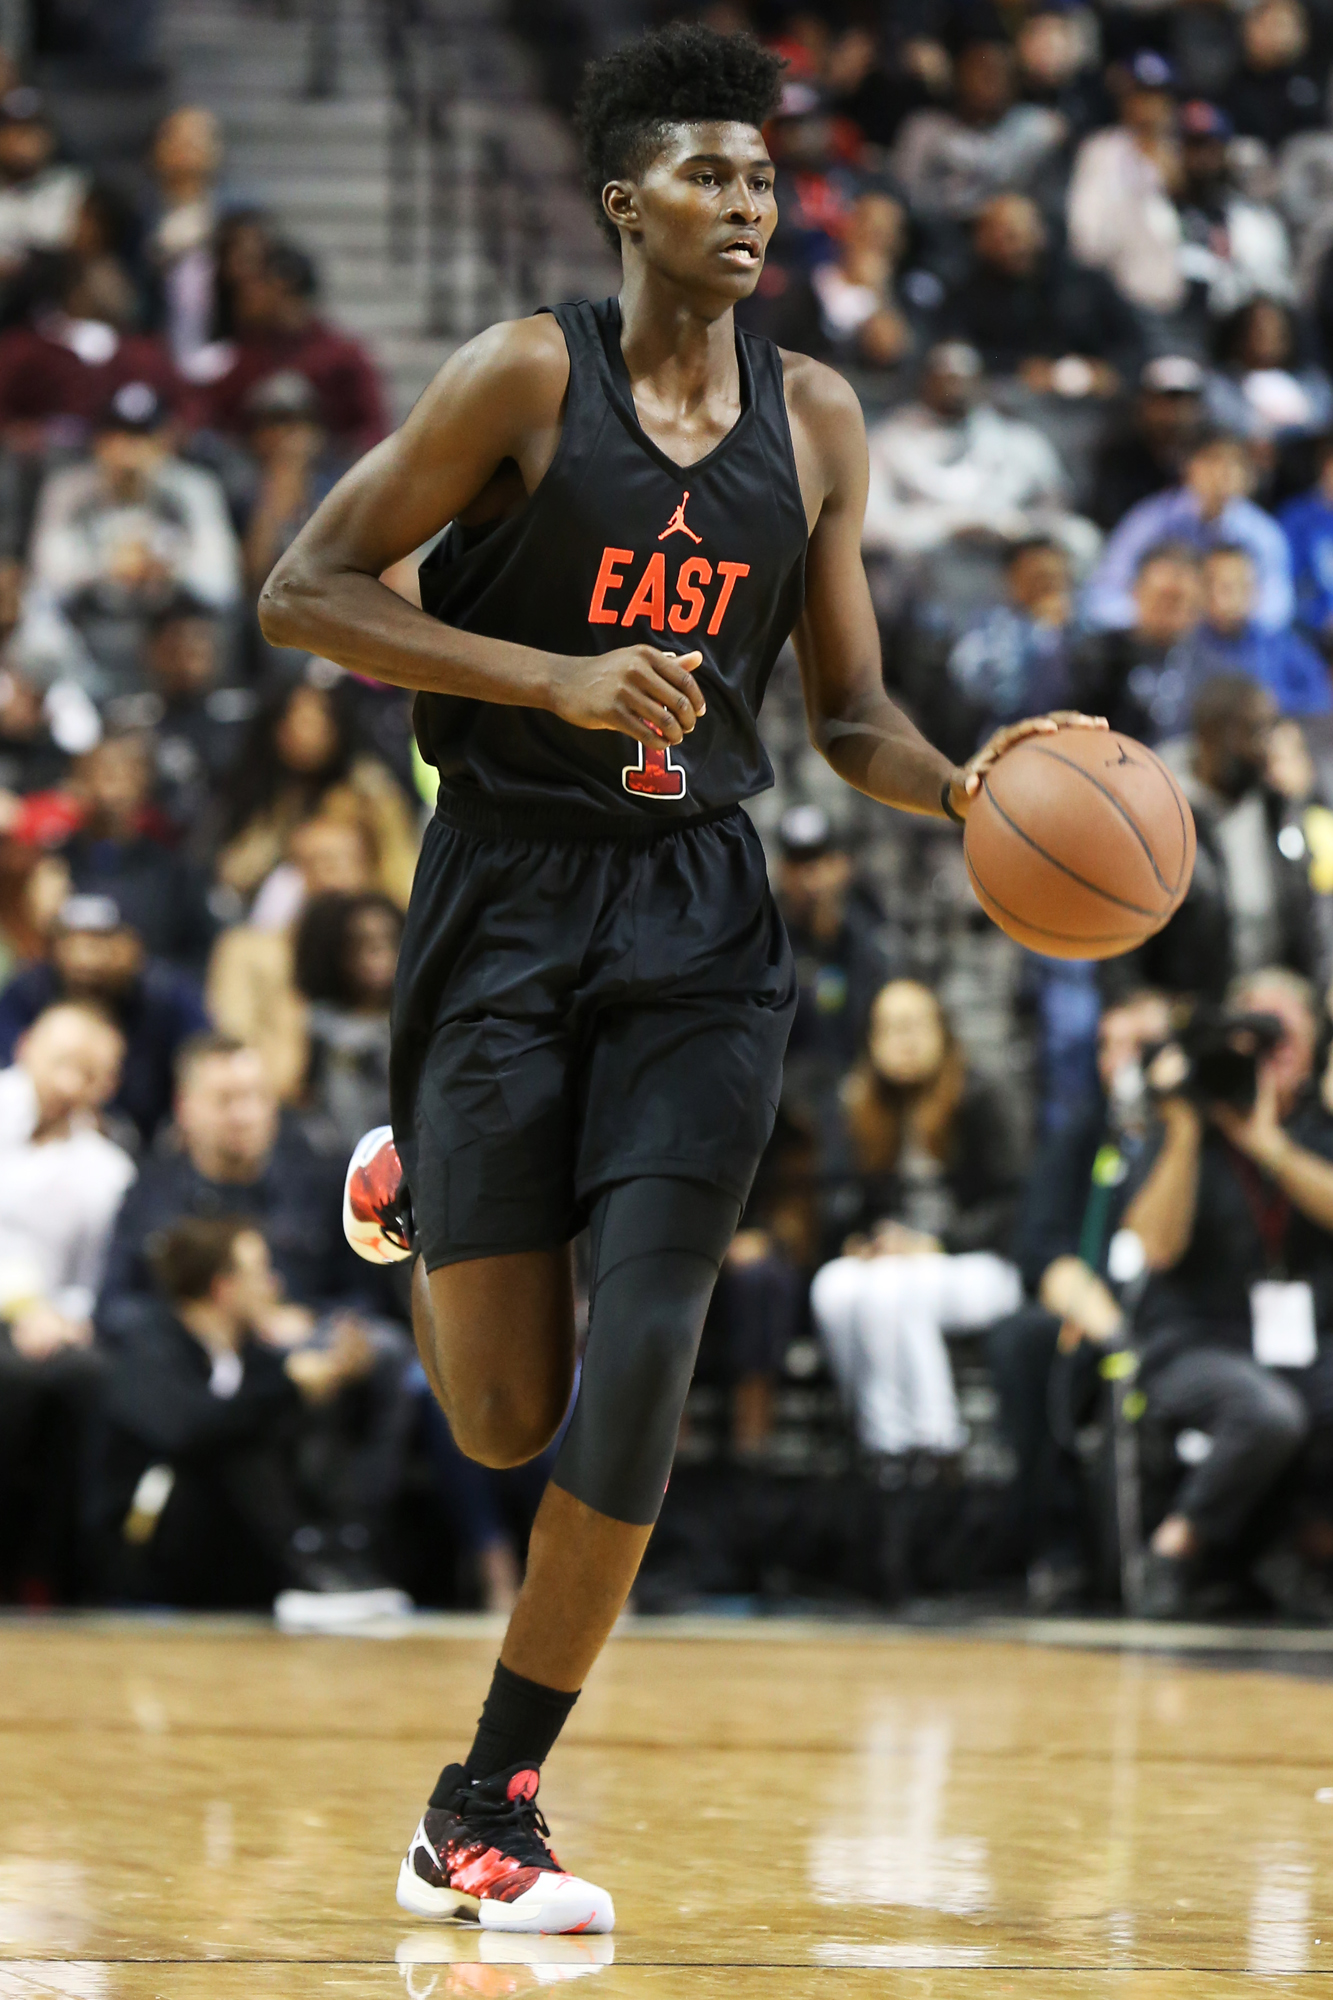 The East team's Jonathan Isaac #1 in action against the West team during a high school basketball game in the Jordan Brand Classic on Friday, April 15, 2016 in Brooklyn, NY.